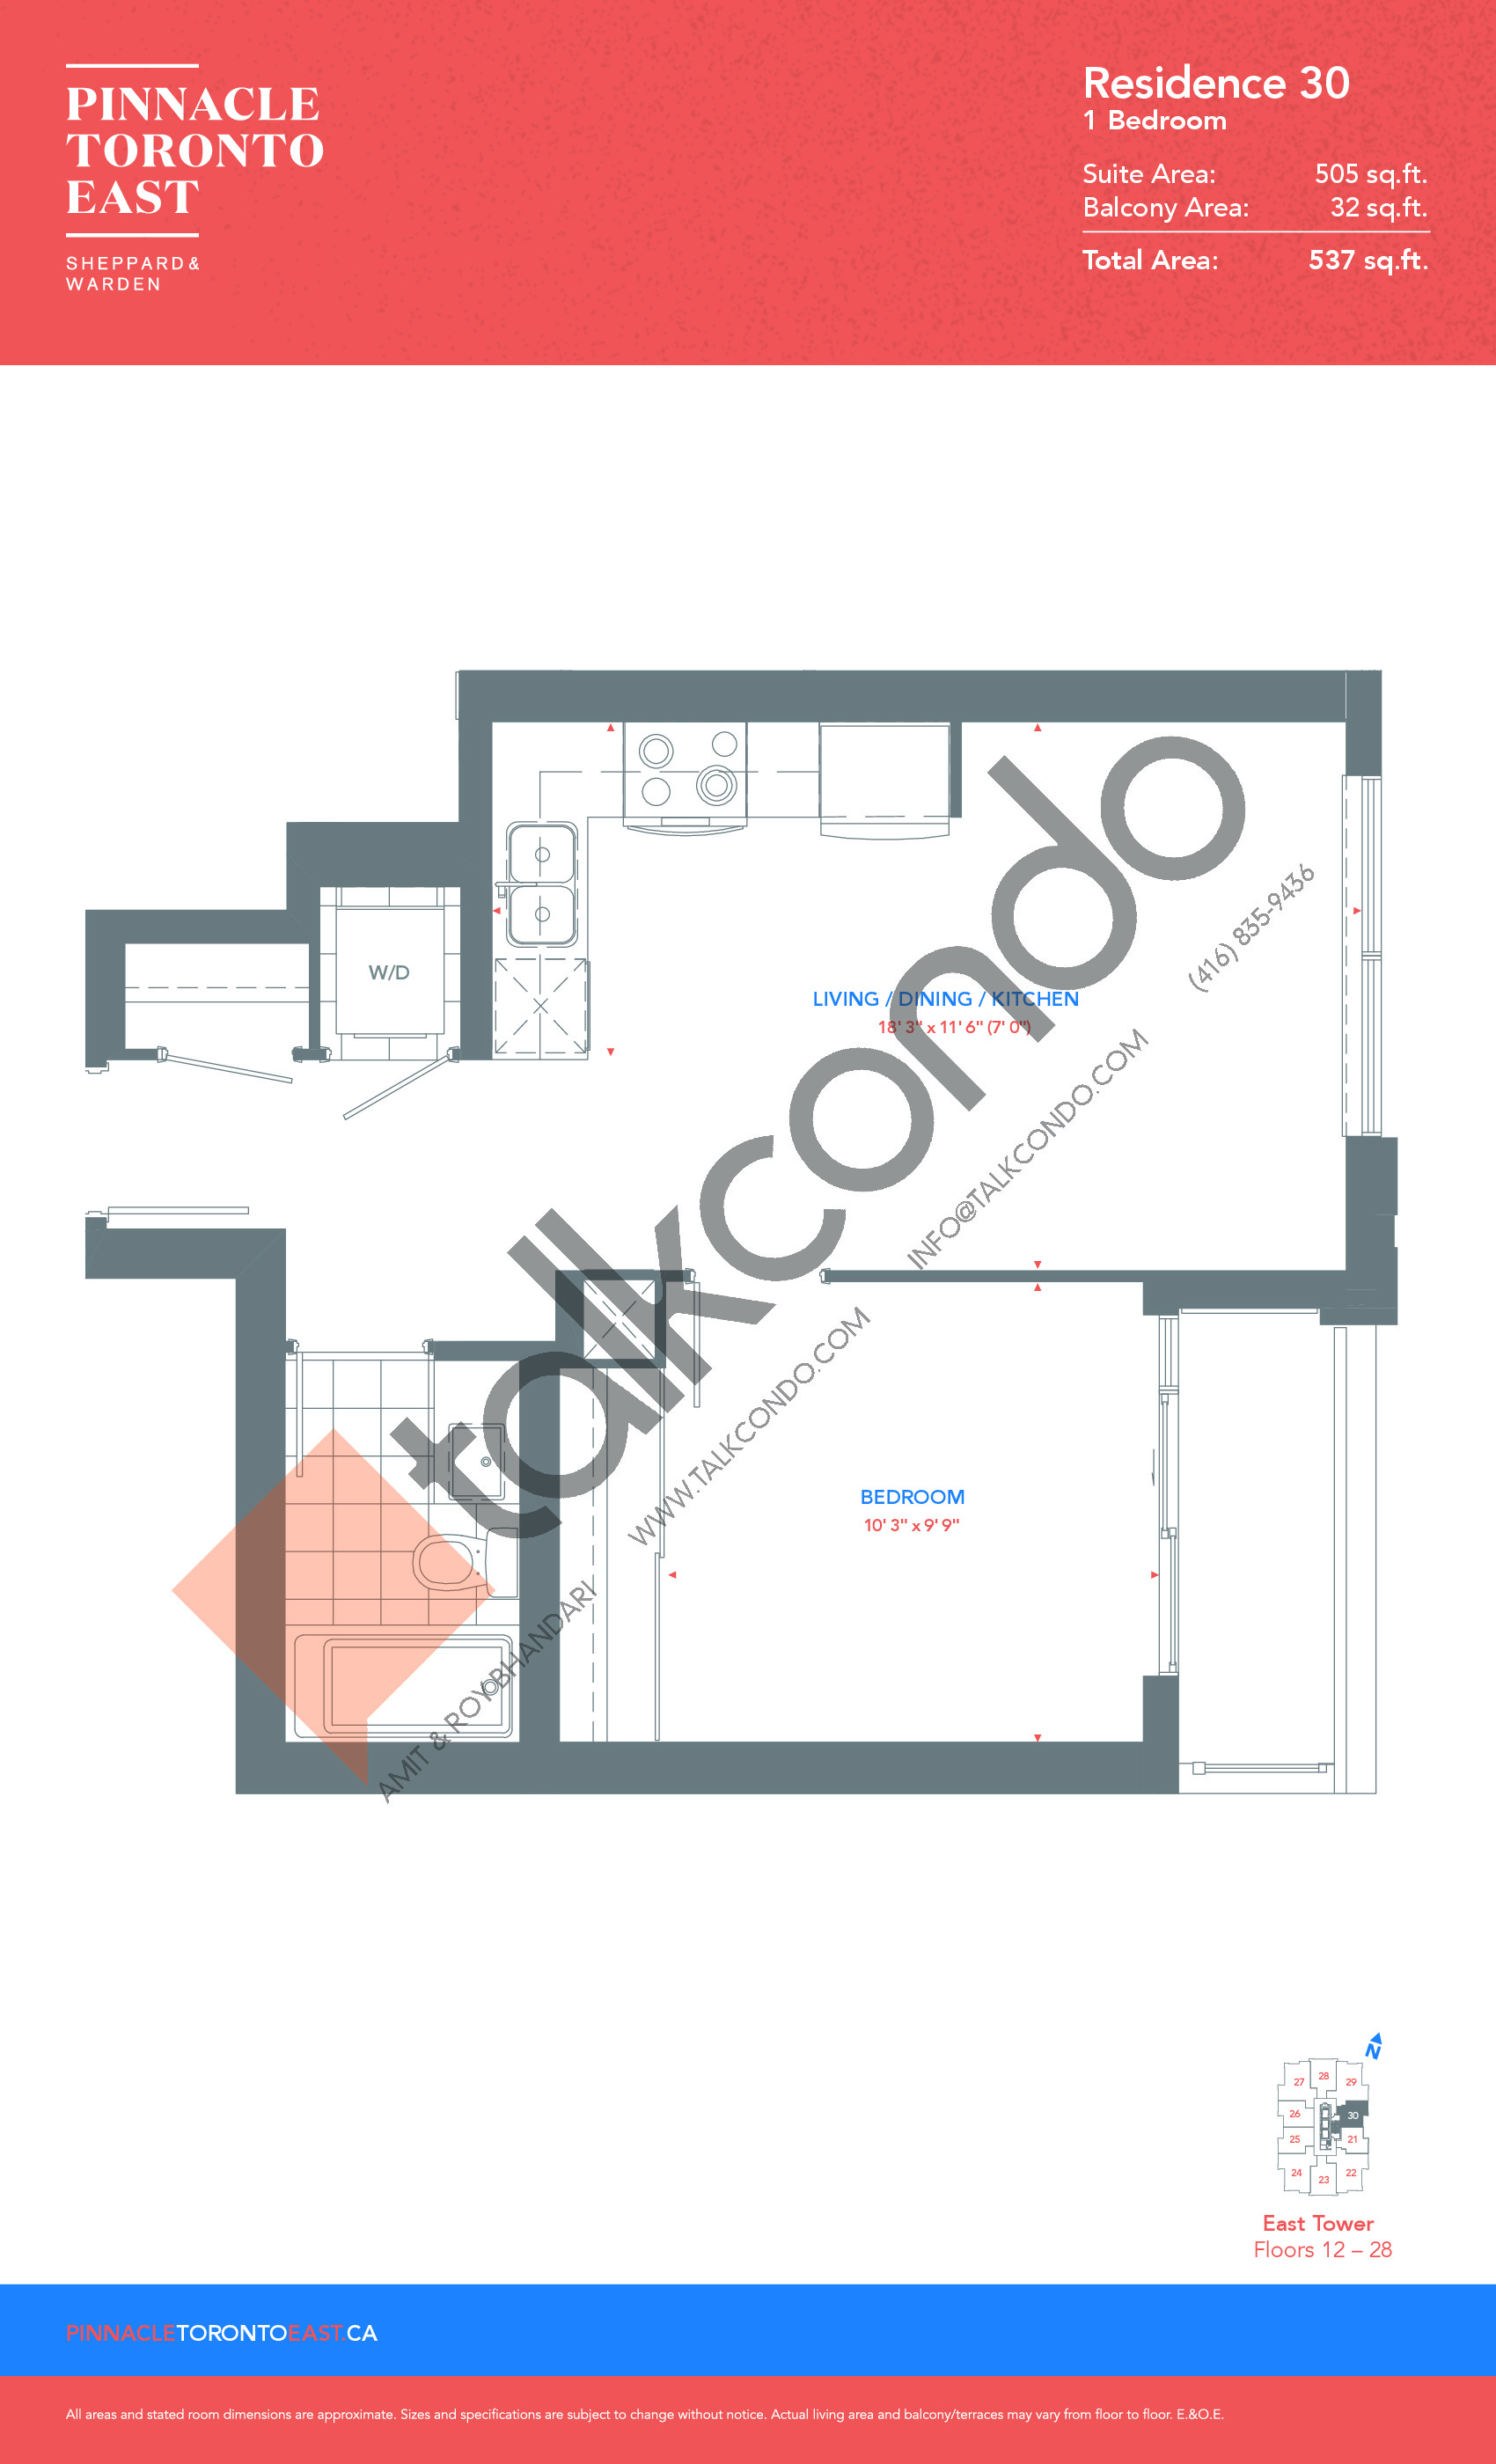 Residence 30 - East Tower Floor Plan at Pinnacle Toronto East Condos - 505 sq.ft